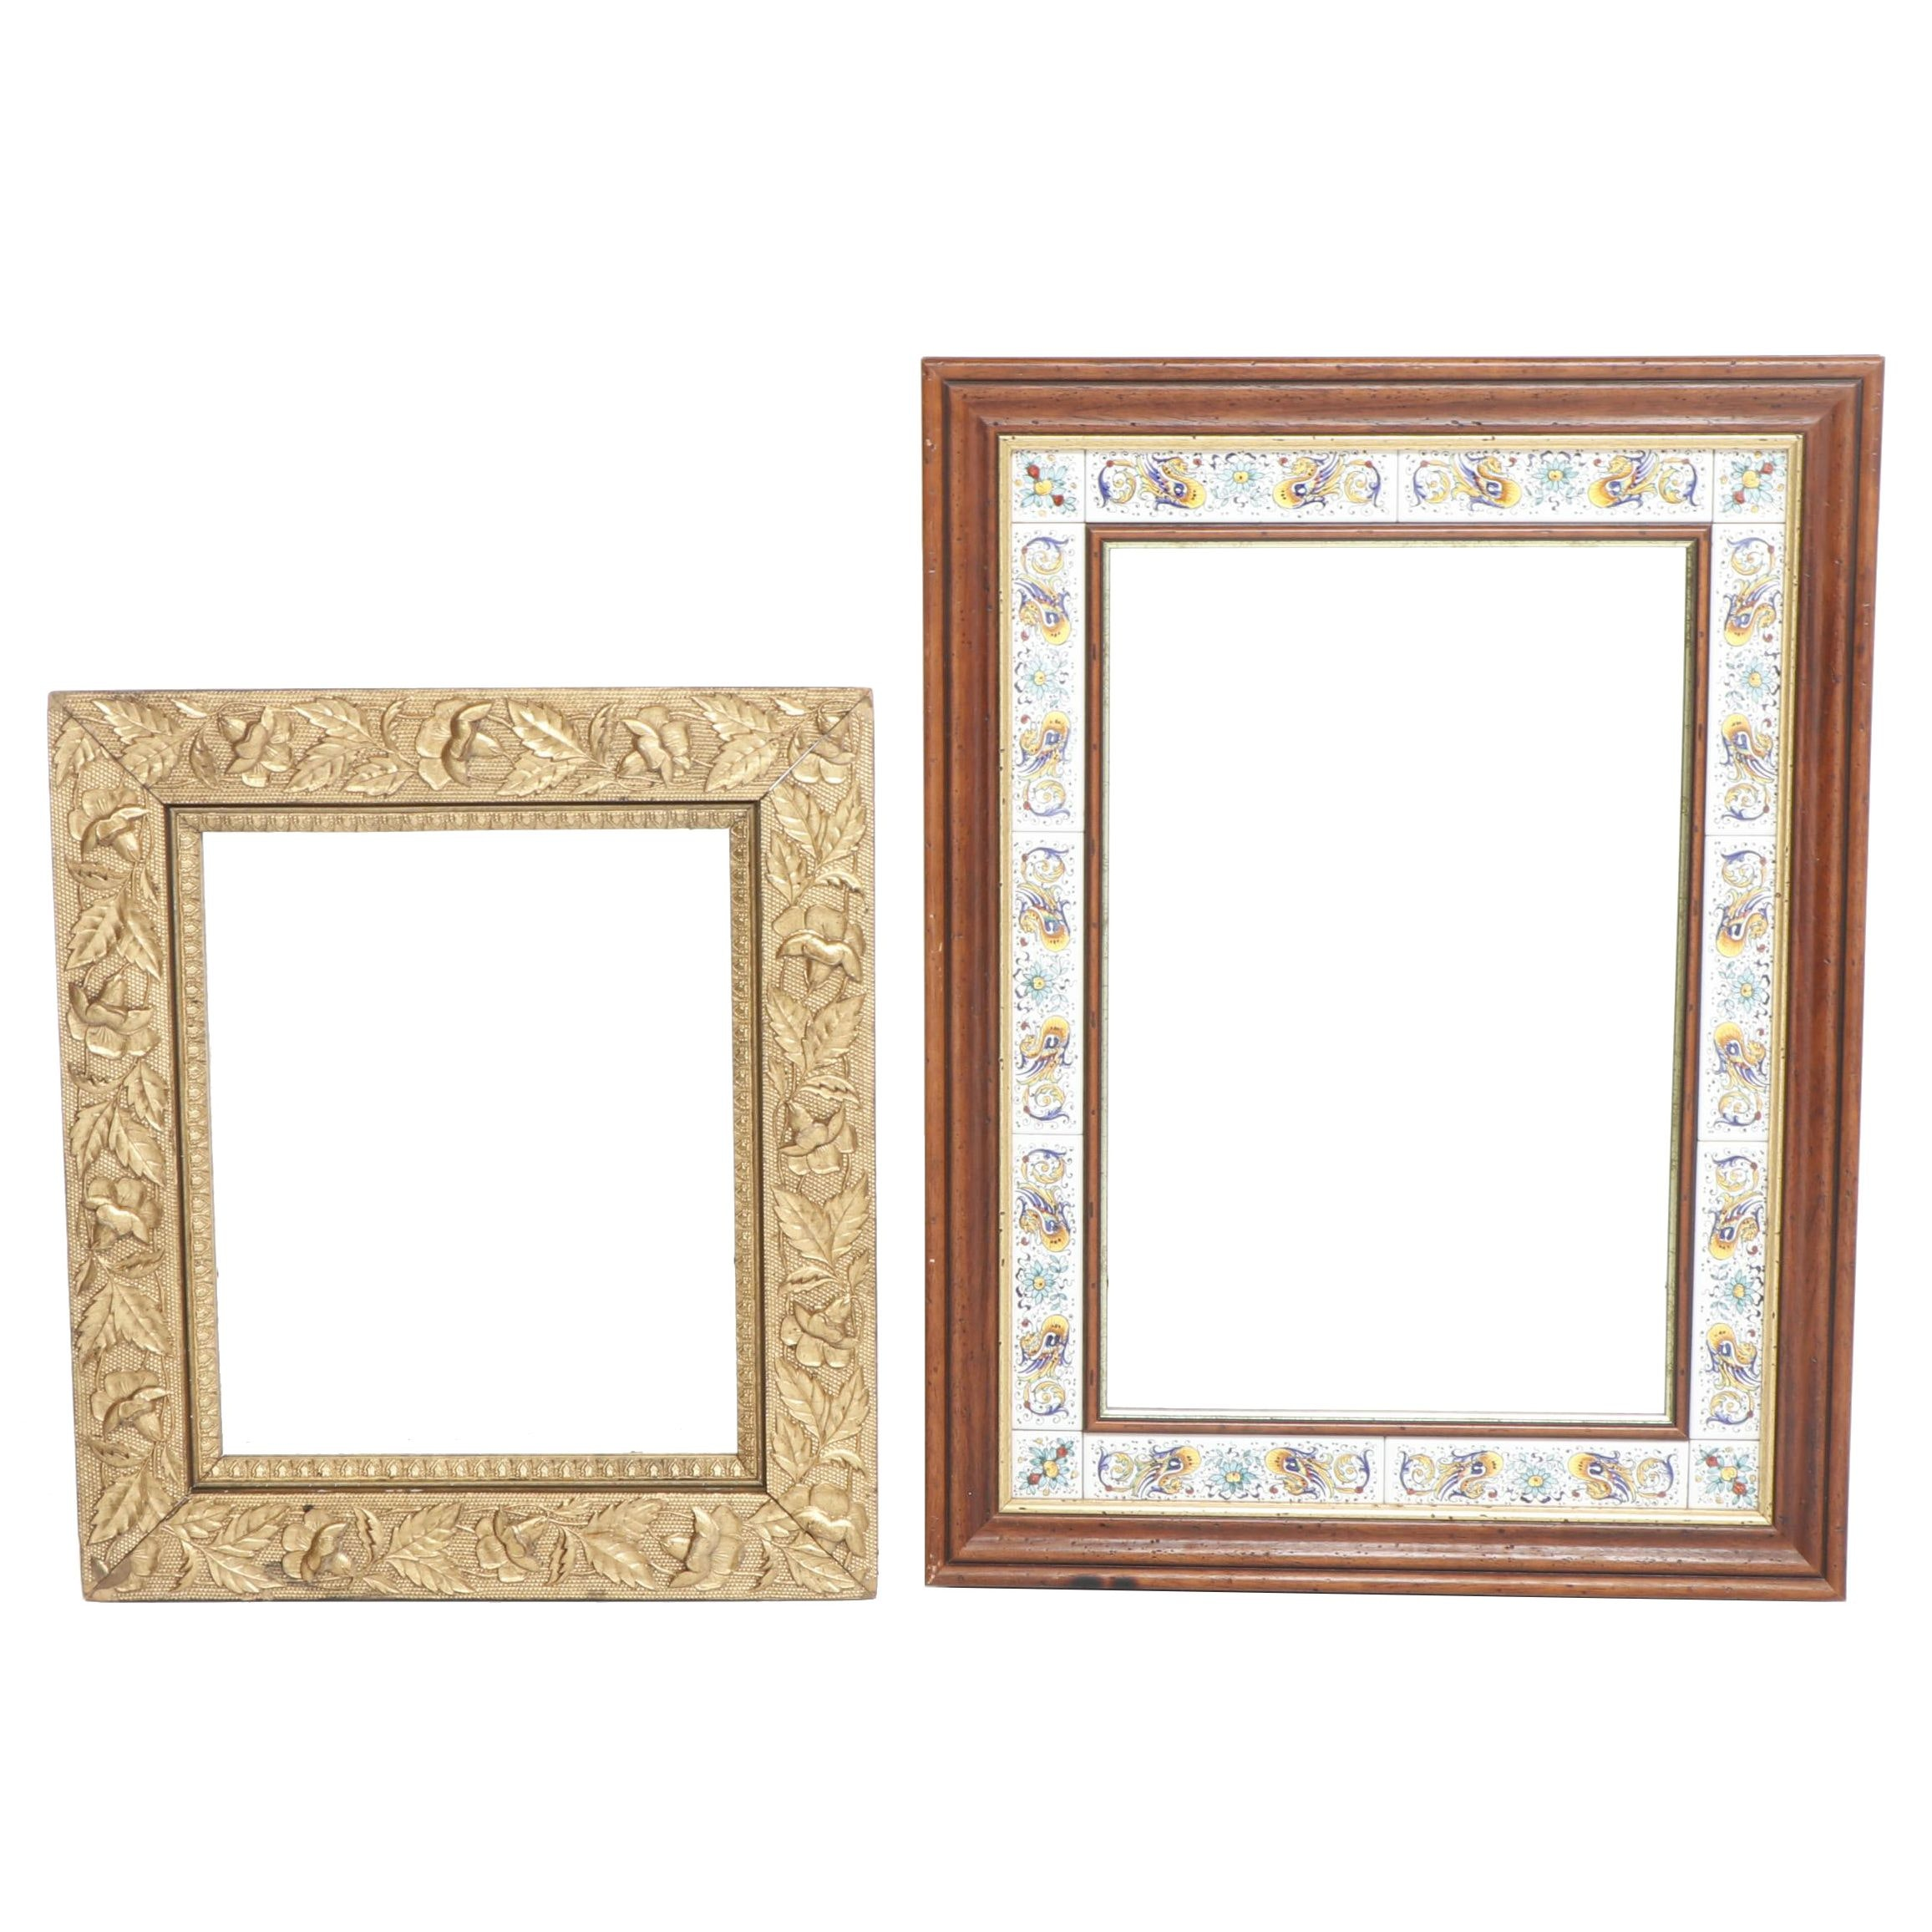 Hand-Painted Deruta Style Tile Framed Mirror with Metal Embossed Mirror